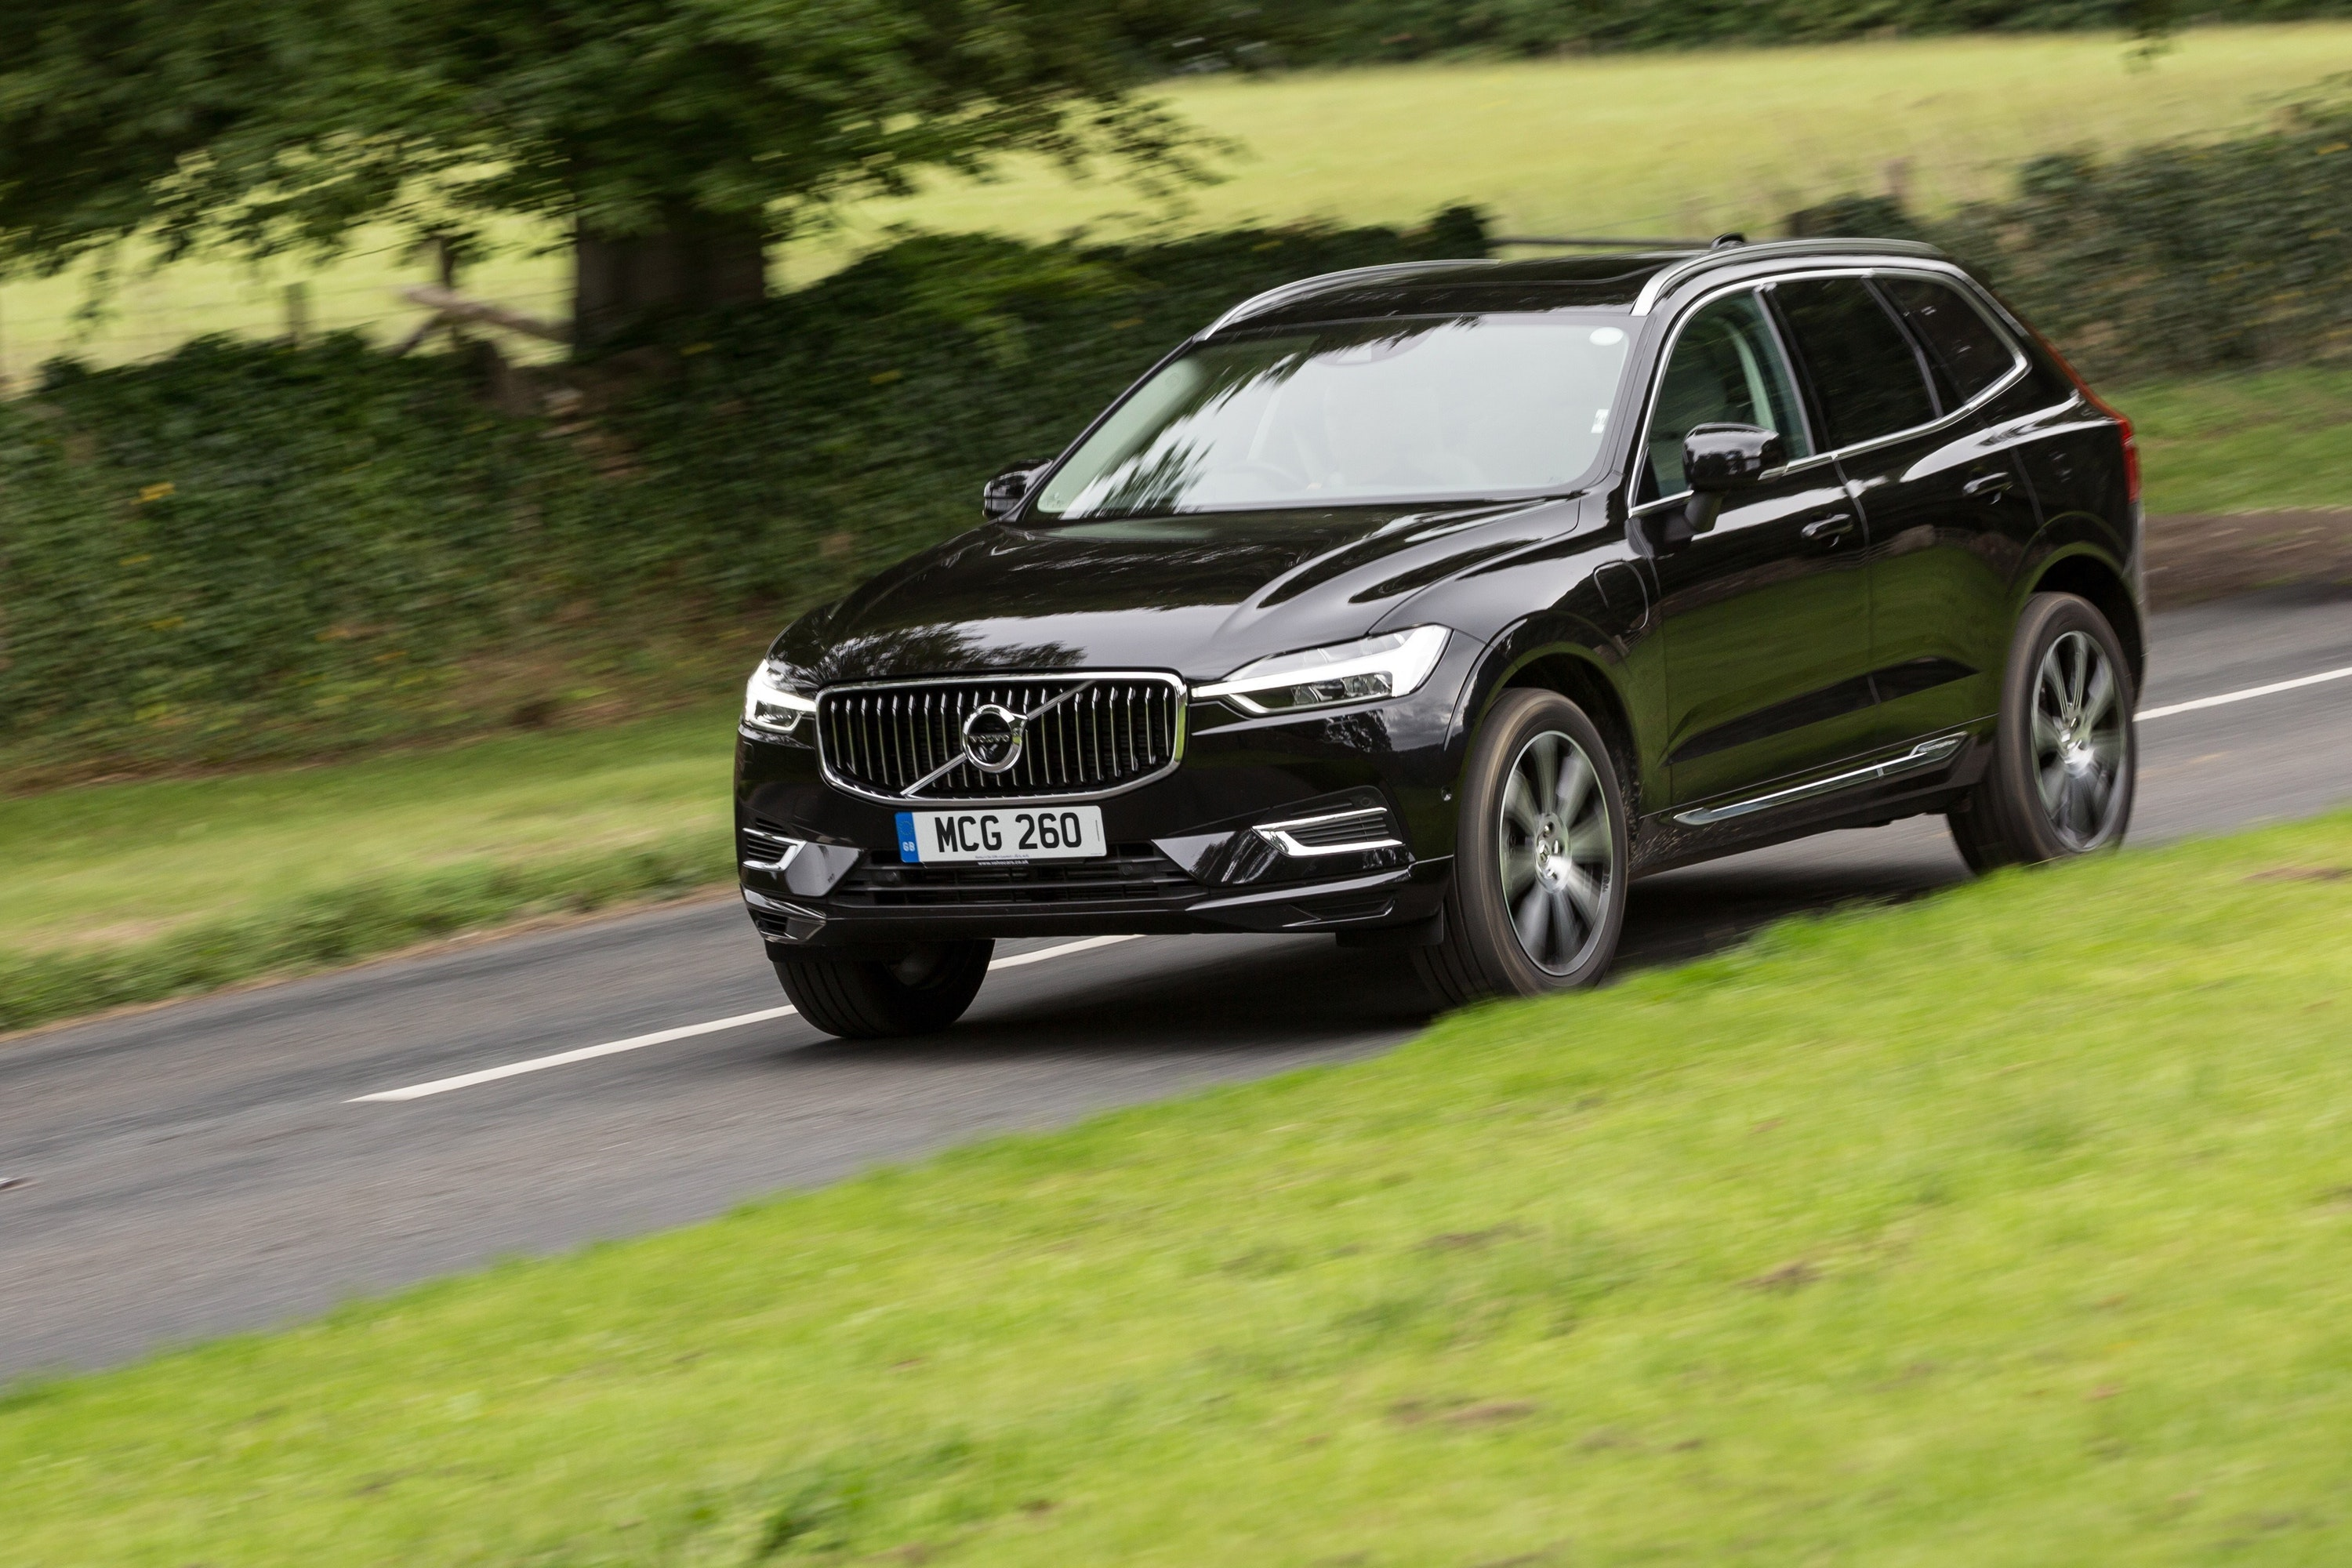 Black Volvo XC60 T8 driving on a road